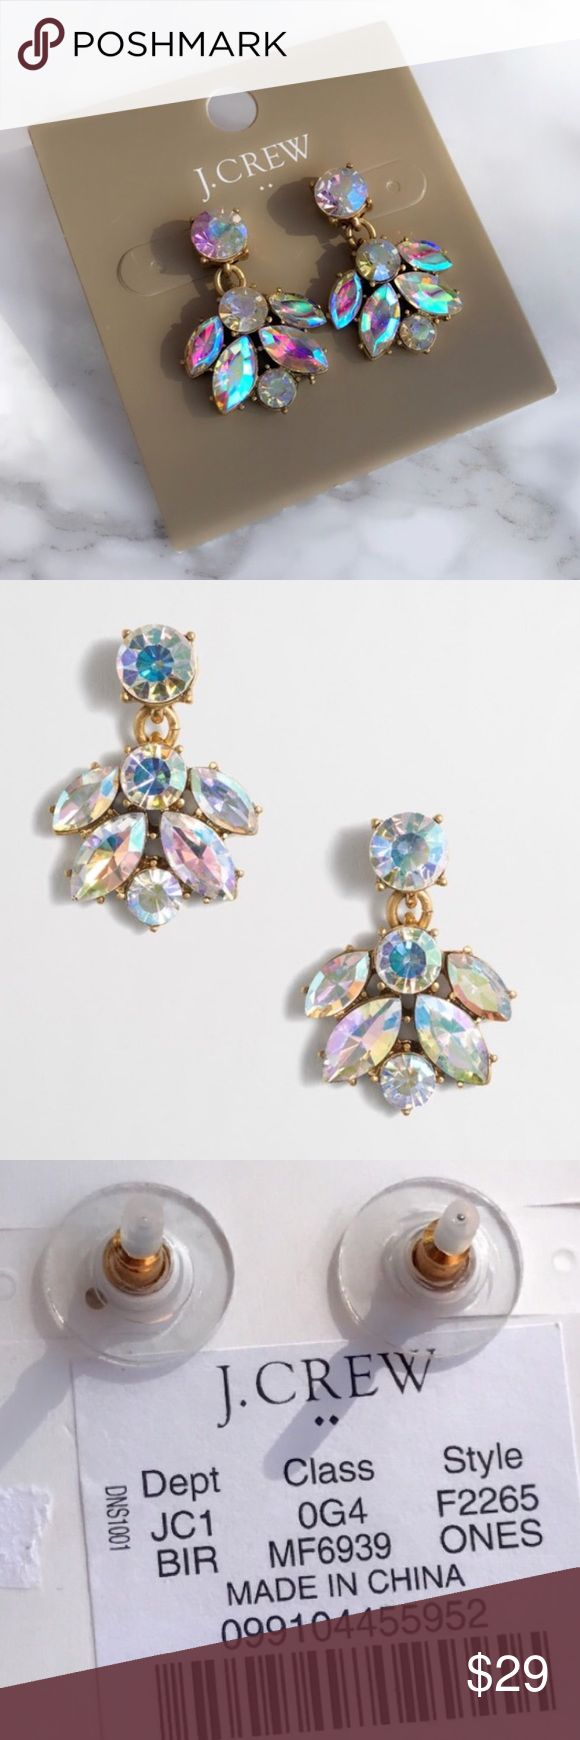 "J Crew Iridescent Crystal Cluster Drop Earrings Zinc, epoxy and glass stones. Light gold ox plating. 1""L x 3/4""W. Import. J. Crew Jewelry Earrings"